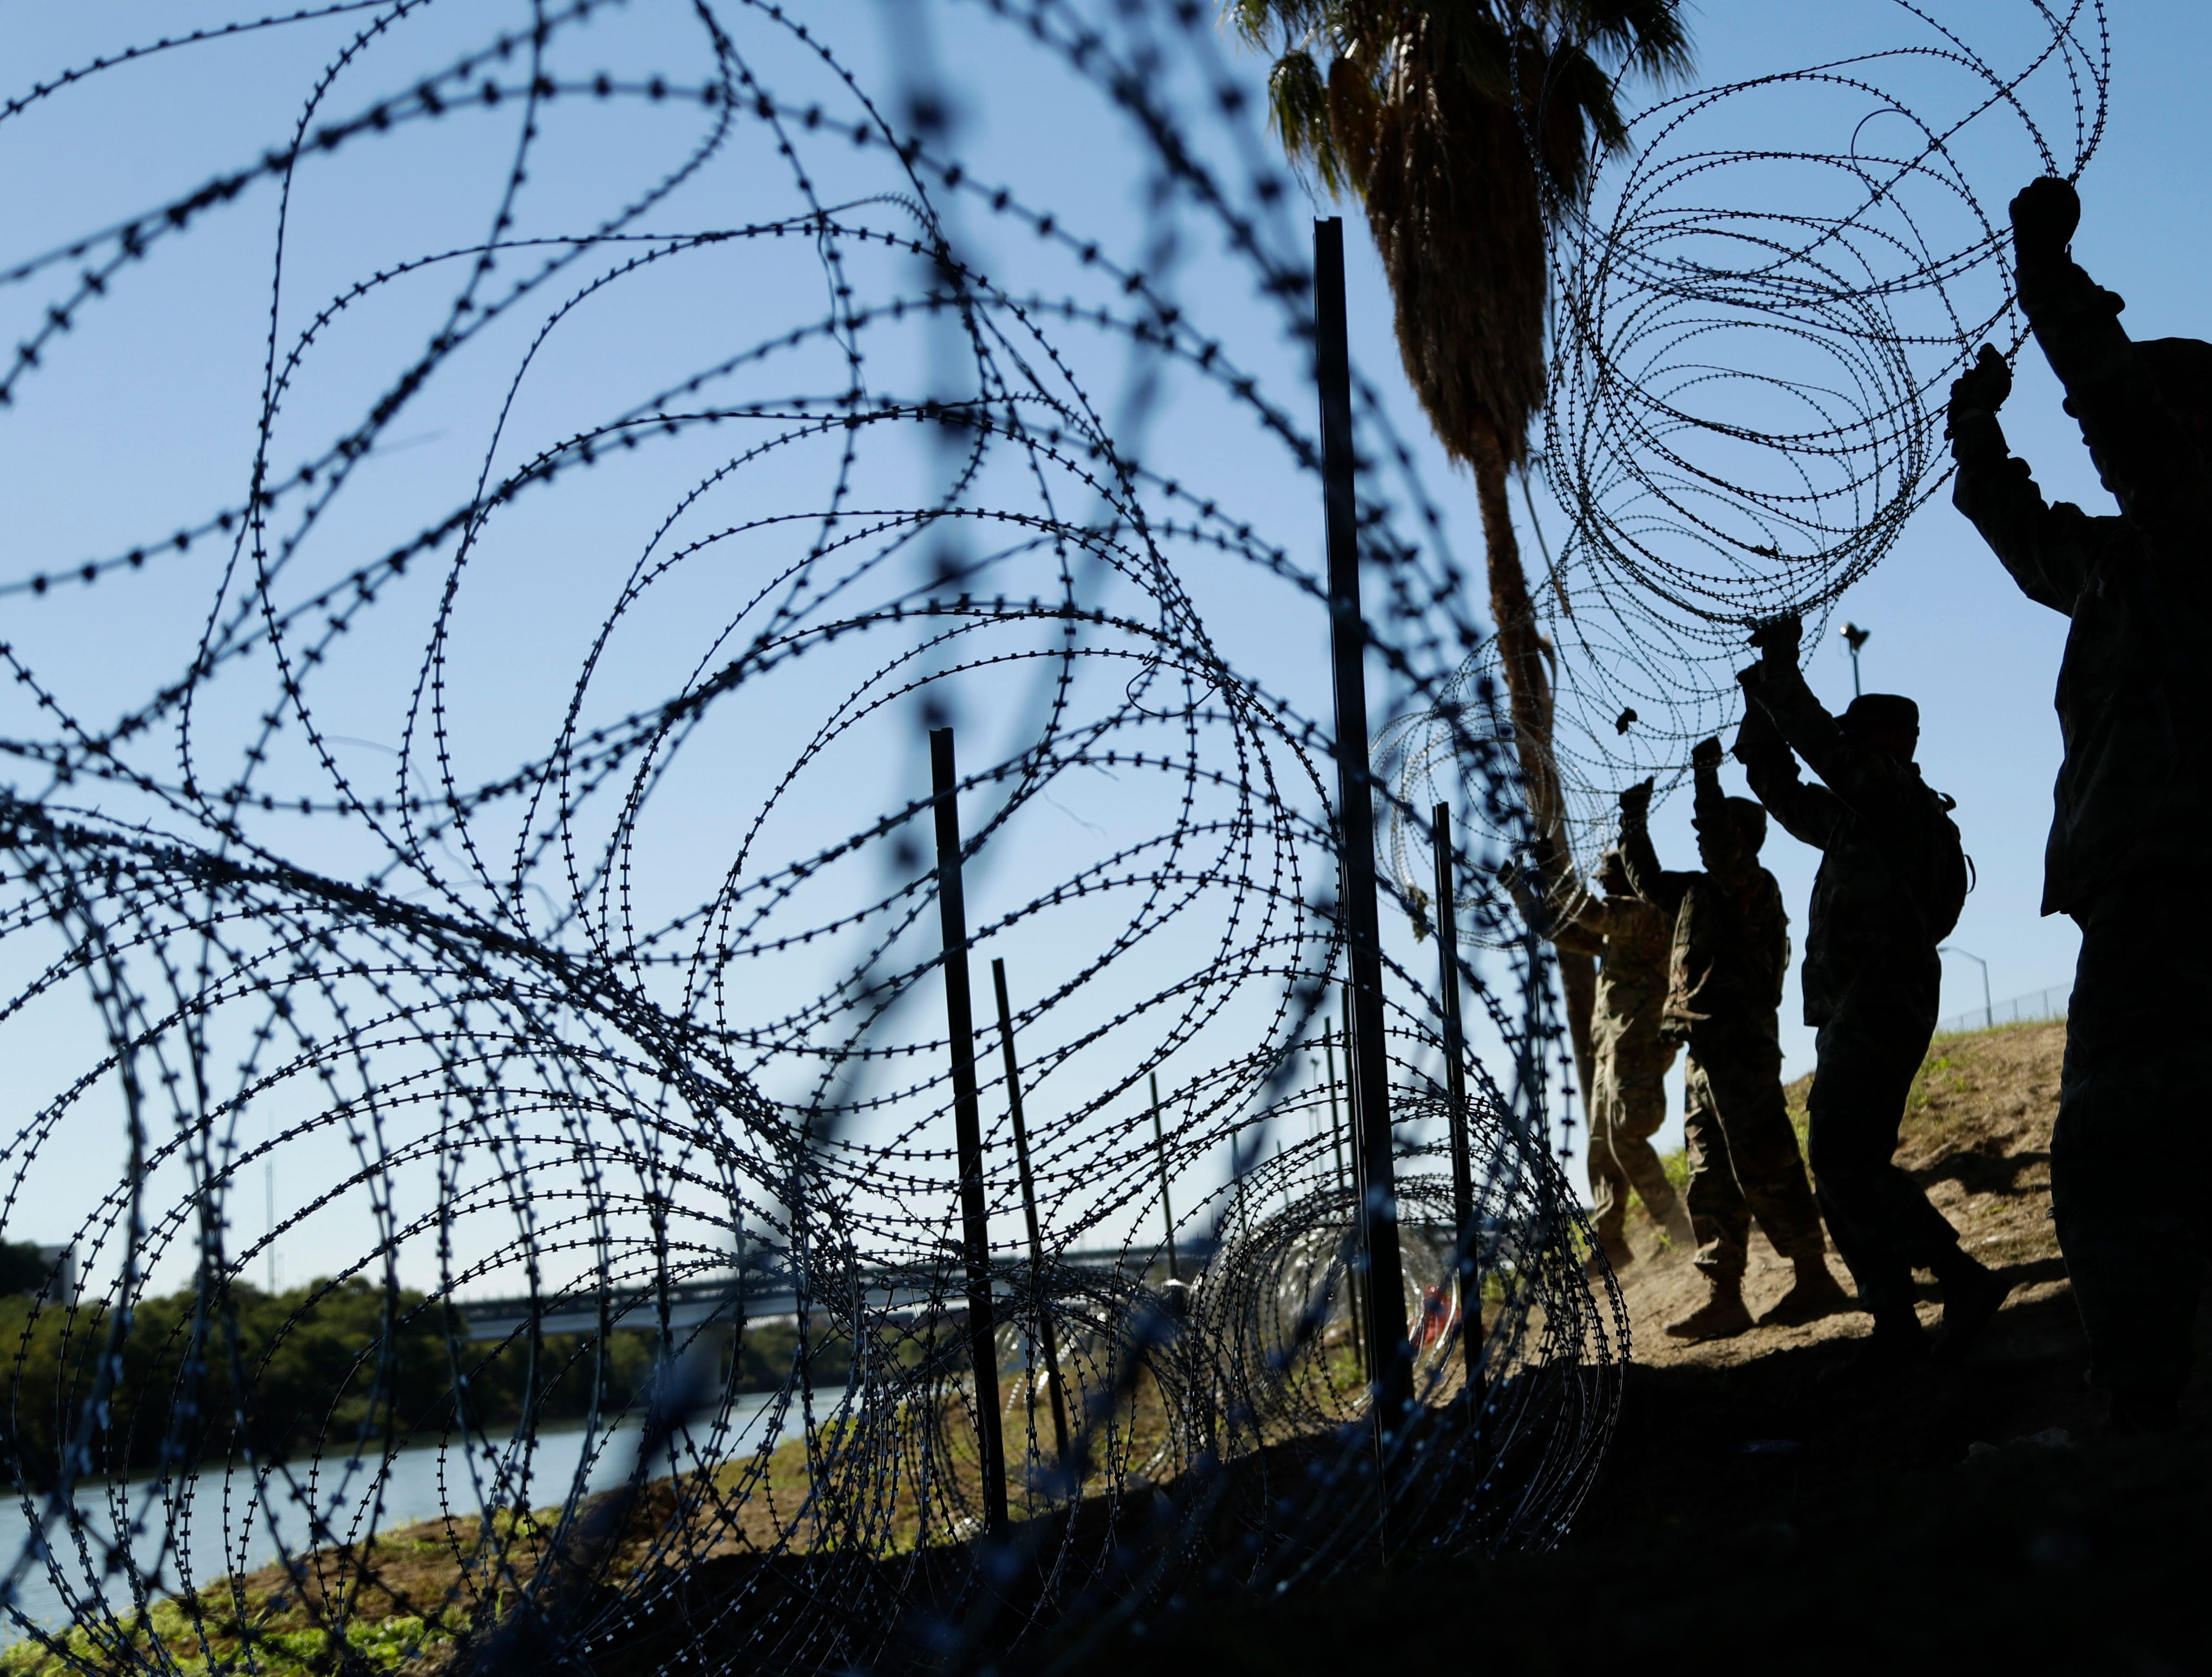 Members of the U.S. military install multiple tiers of concertina wire along the banks of the Rio Grande near the Juarez-Lincoln Bridge at the U.S.-Mexico border, Friday, Nov. 16, 2018, in Laredo, Texas.